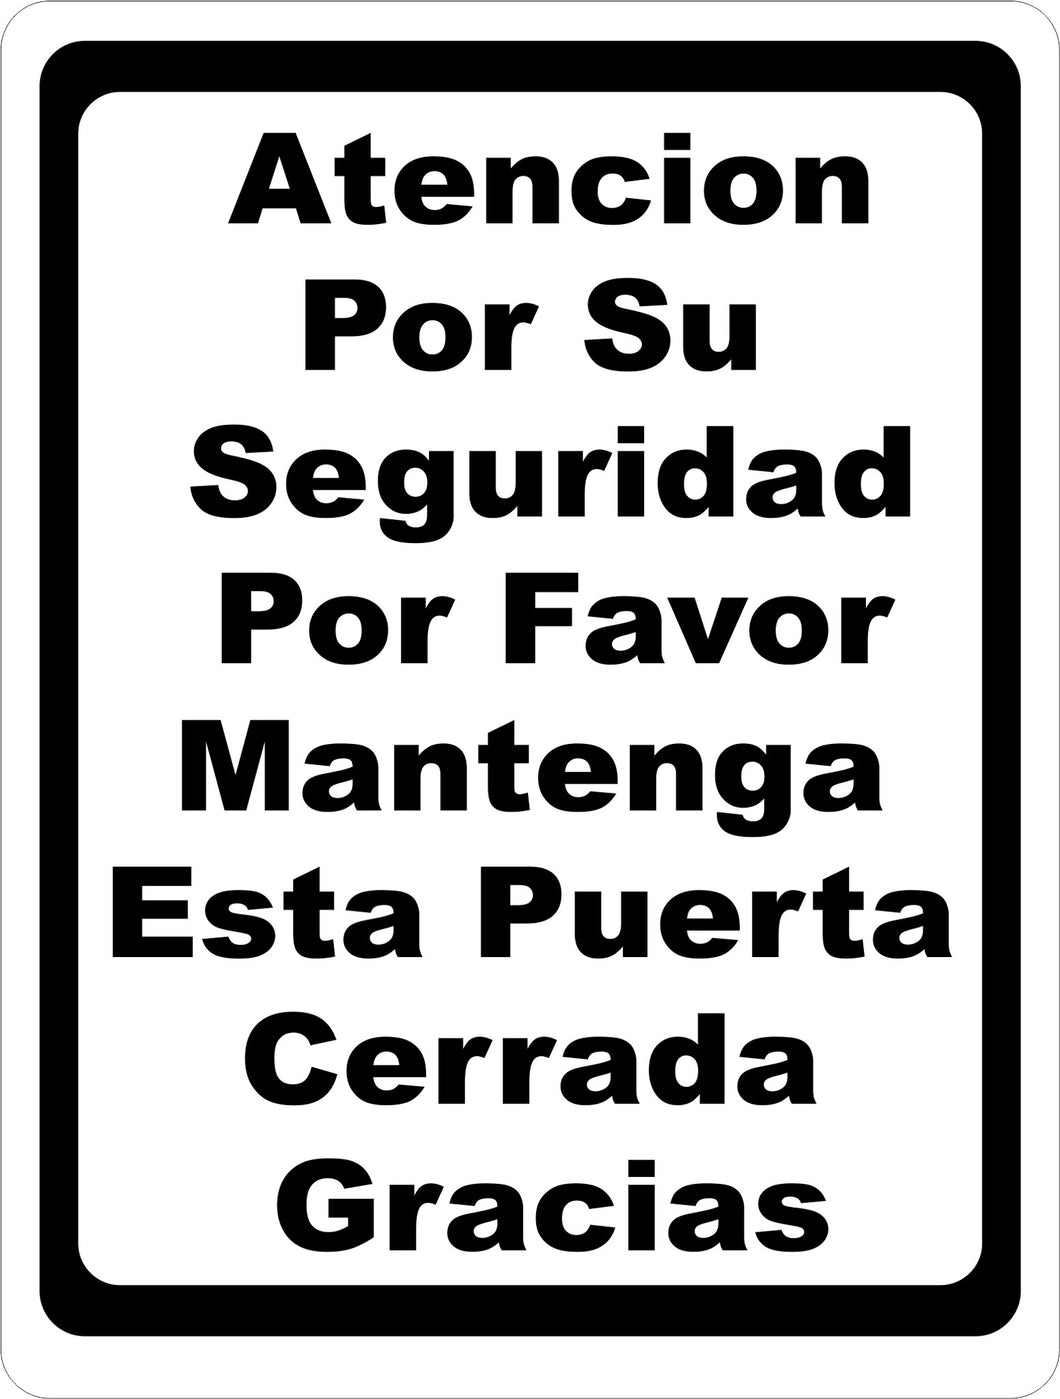 Atencion Por Su Seguridad Por Favor Mantenga Esta Puerta Cerrada Sign - Signs & Decals by SalaGraphics